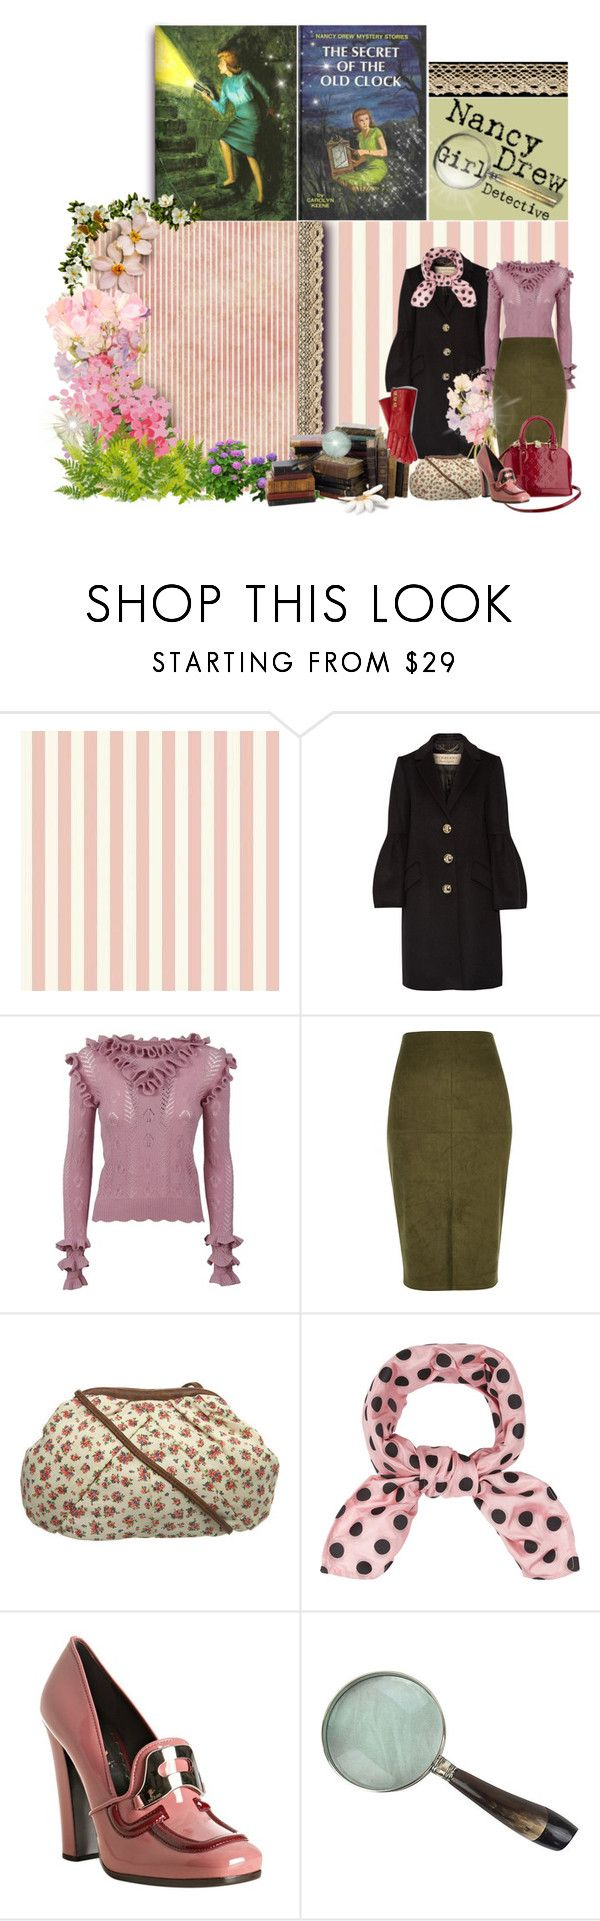 """""""Girl Detective"""" by renete ❤ liked on Polyvore featuring Burberry, Bastien, Gucci, River Island, Miss Selfridge, Miu Miu, Louis Vuitton, Prada, Coach and KEEP ME"""